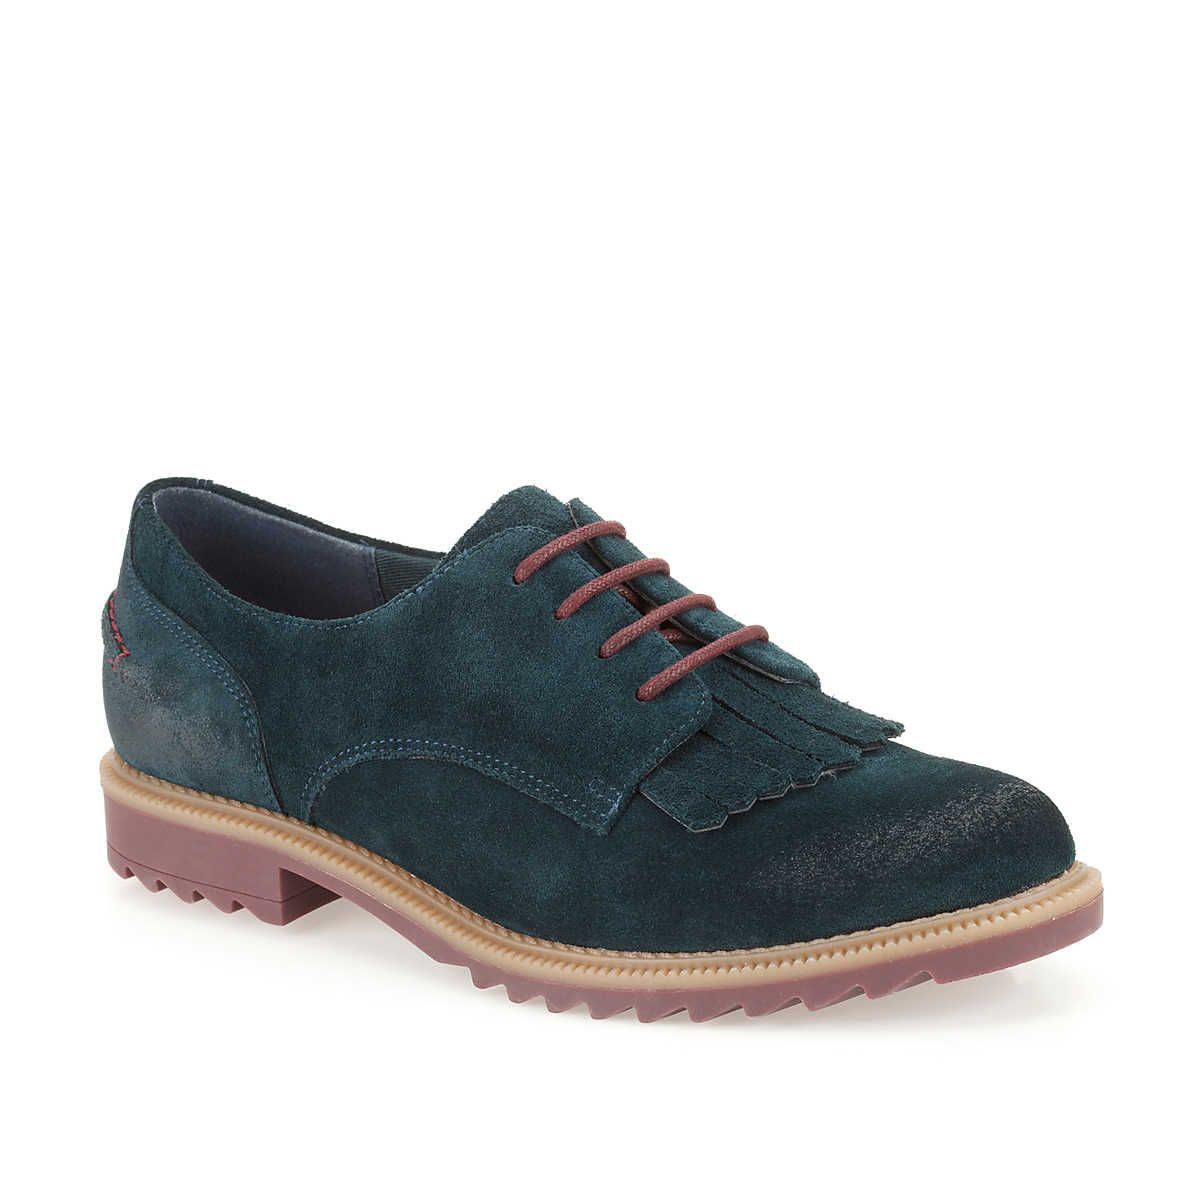 09130329fa8 Griffin Mabel in Midnight Suede - Womens Shoes from Clarks